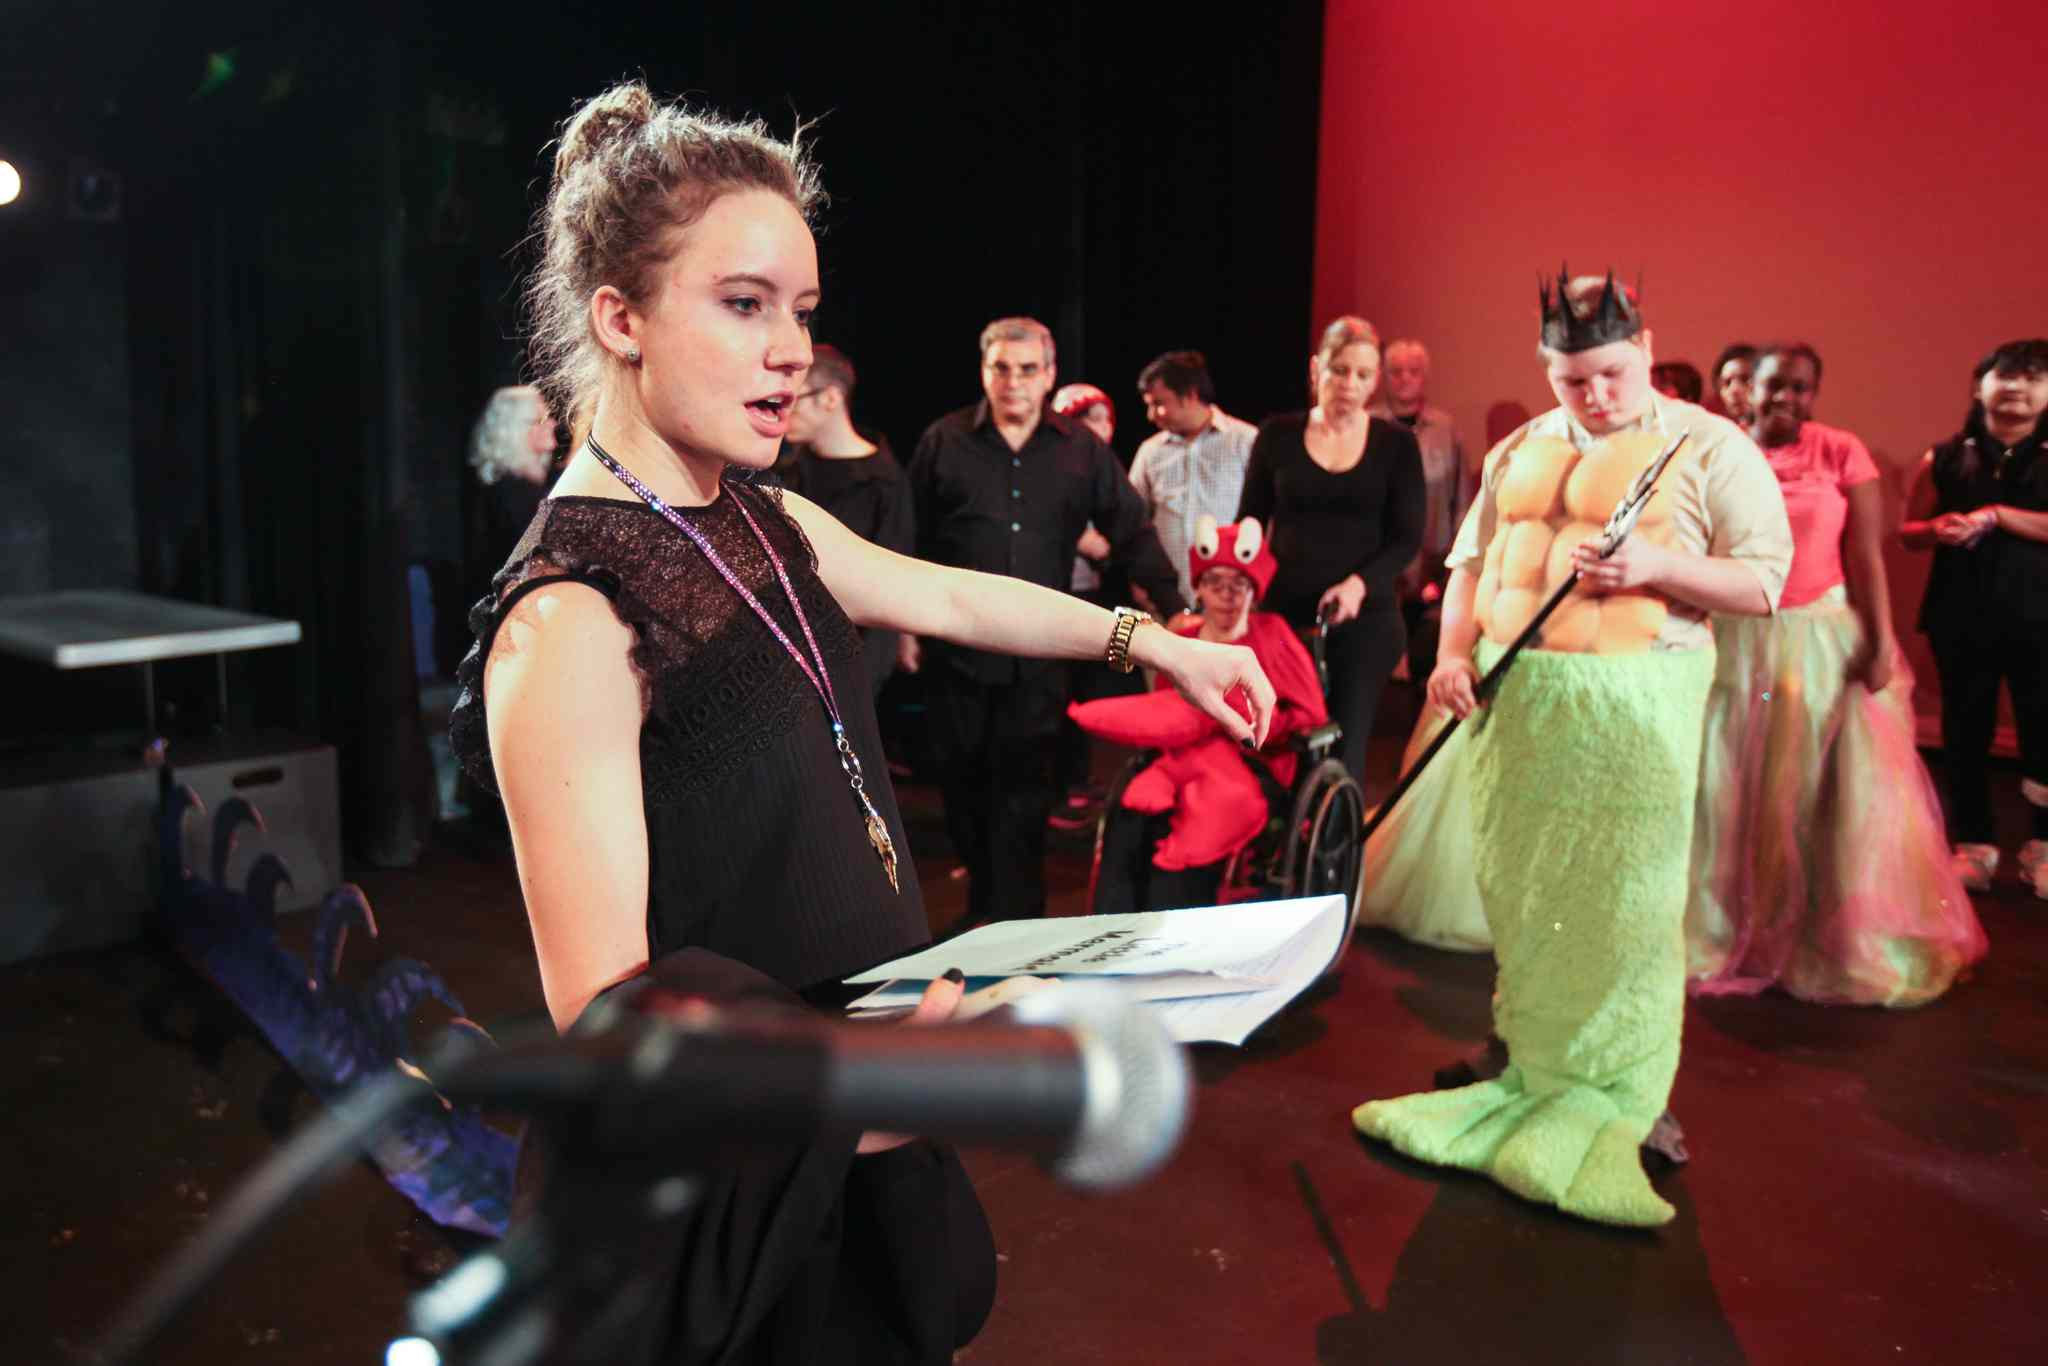 Ashley Fredette speaks to the cast during the dress rehearsal. (Ruth Bonneville / Winnipeg Free Press)